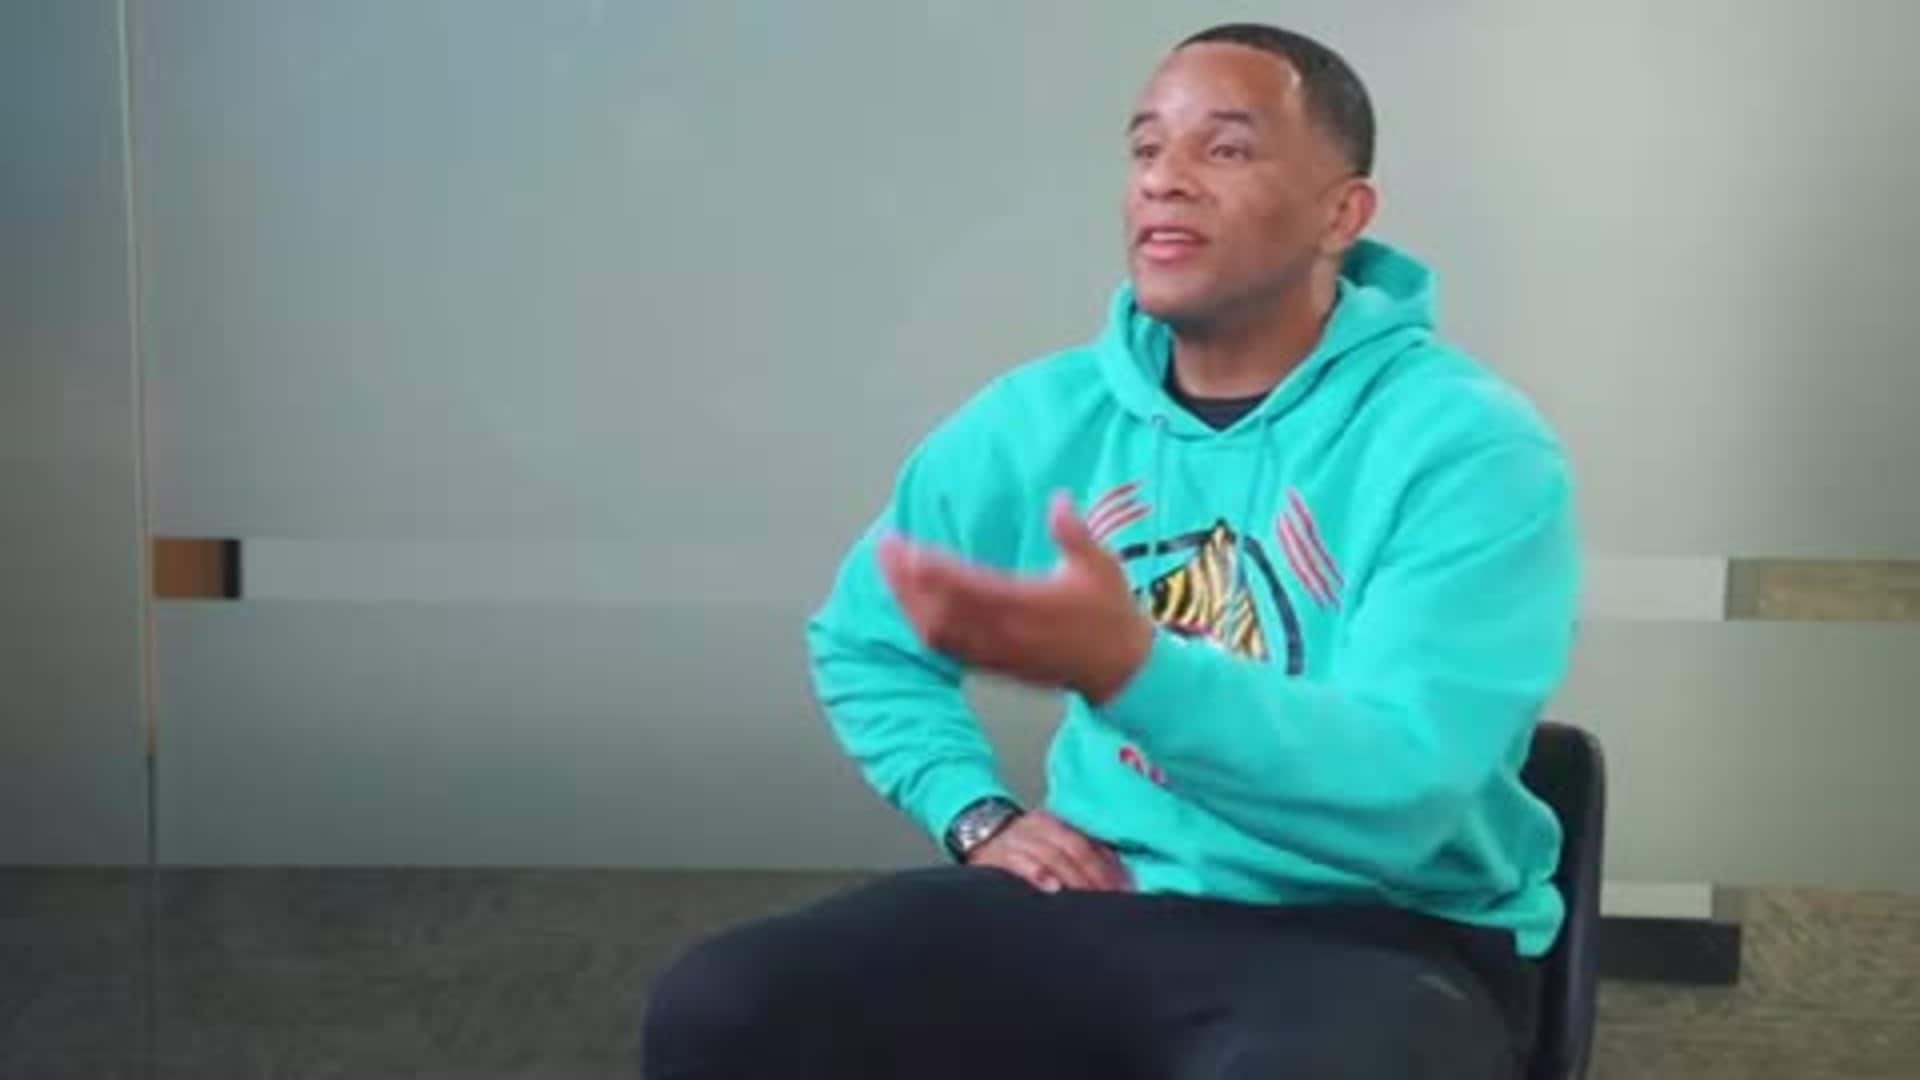 Damon Stoudamire reflects on his time in Portland | Return to Rip City presented by Alaska Airlines